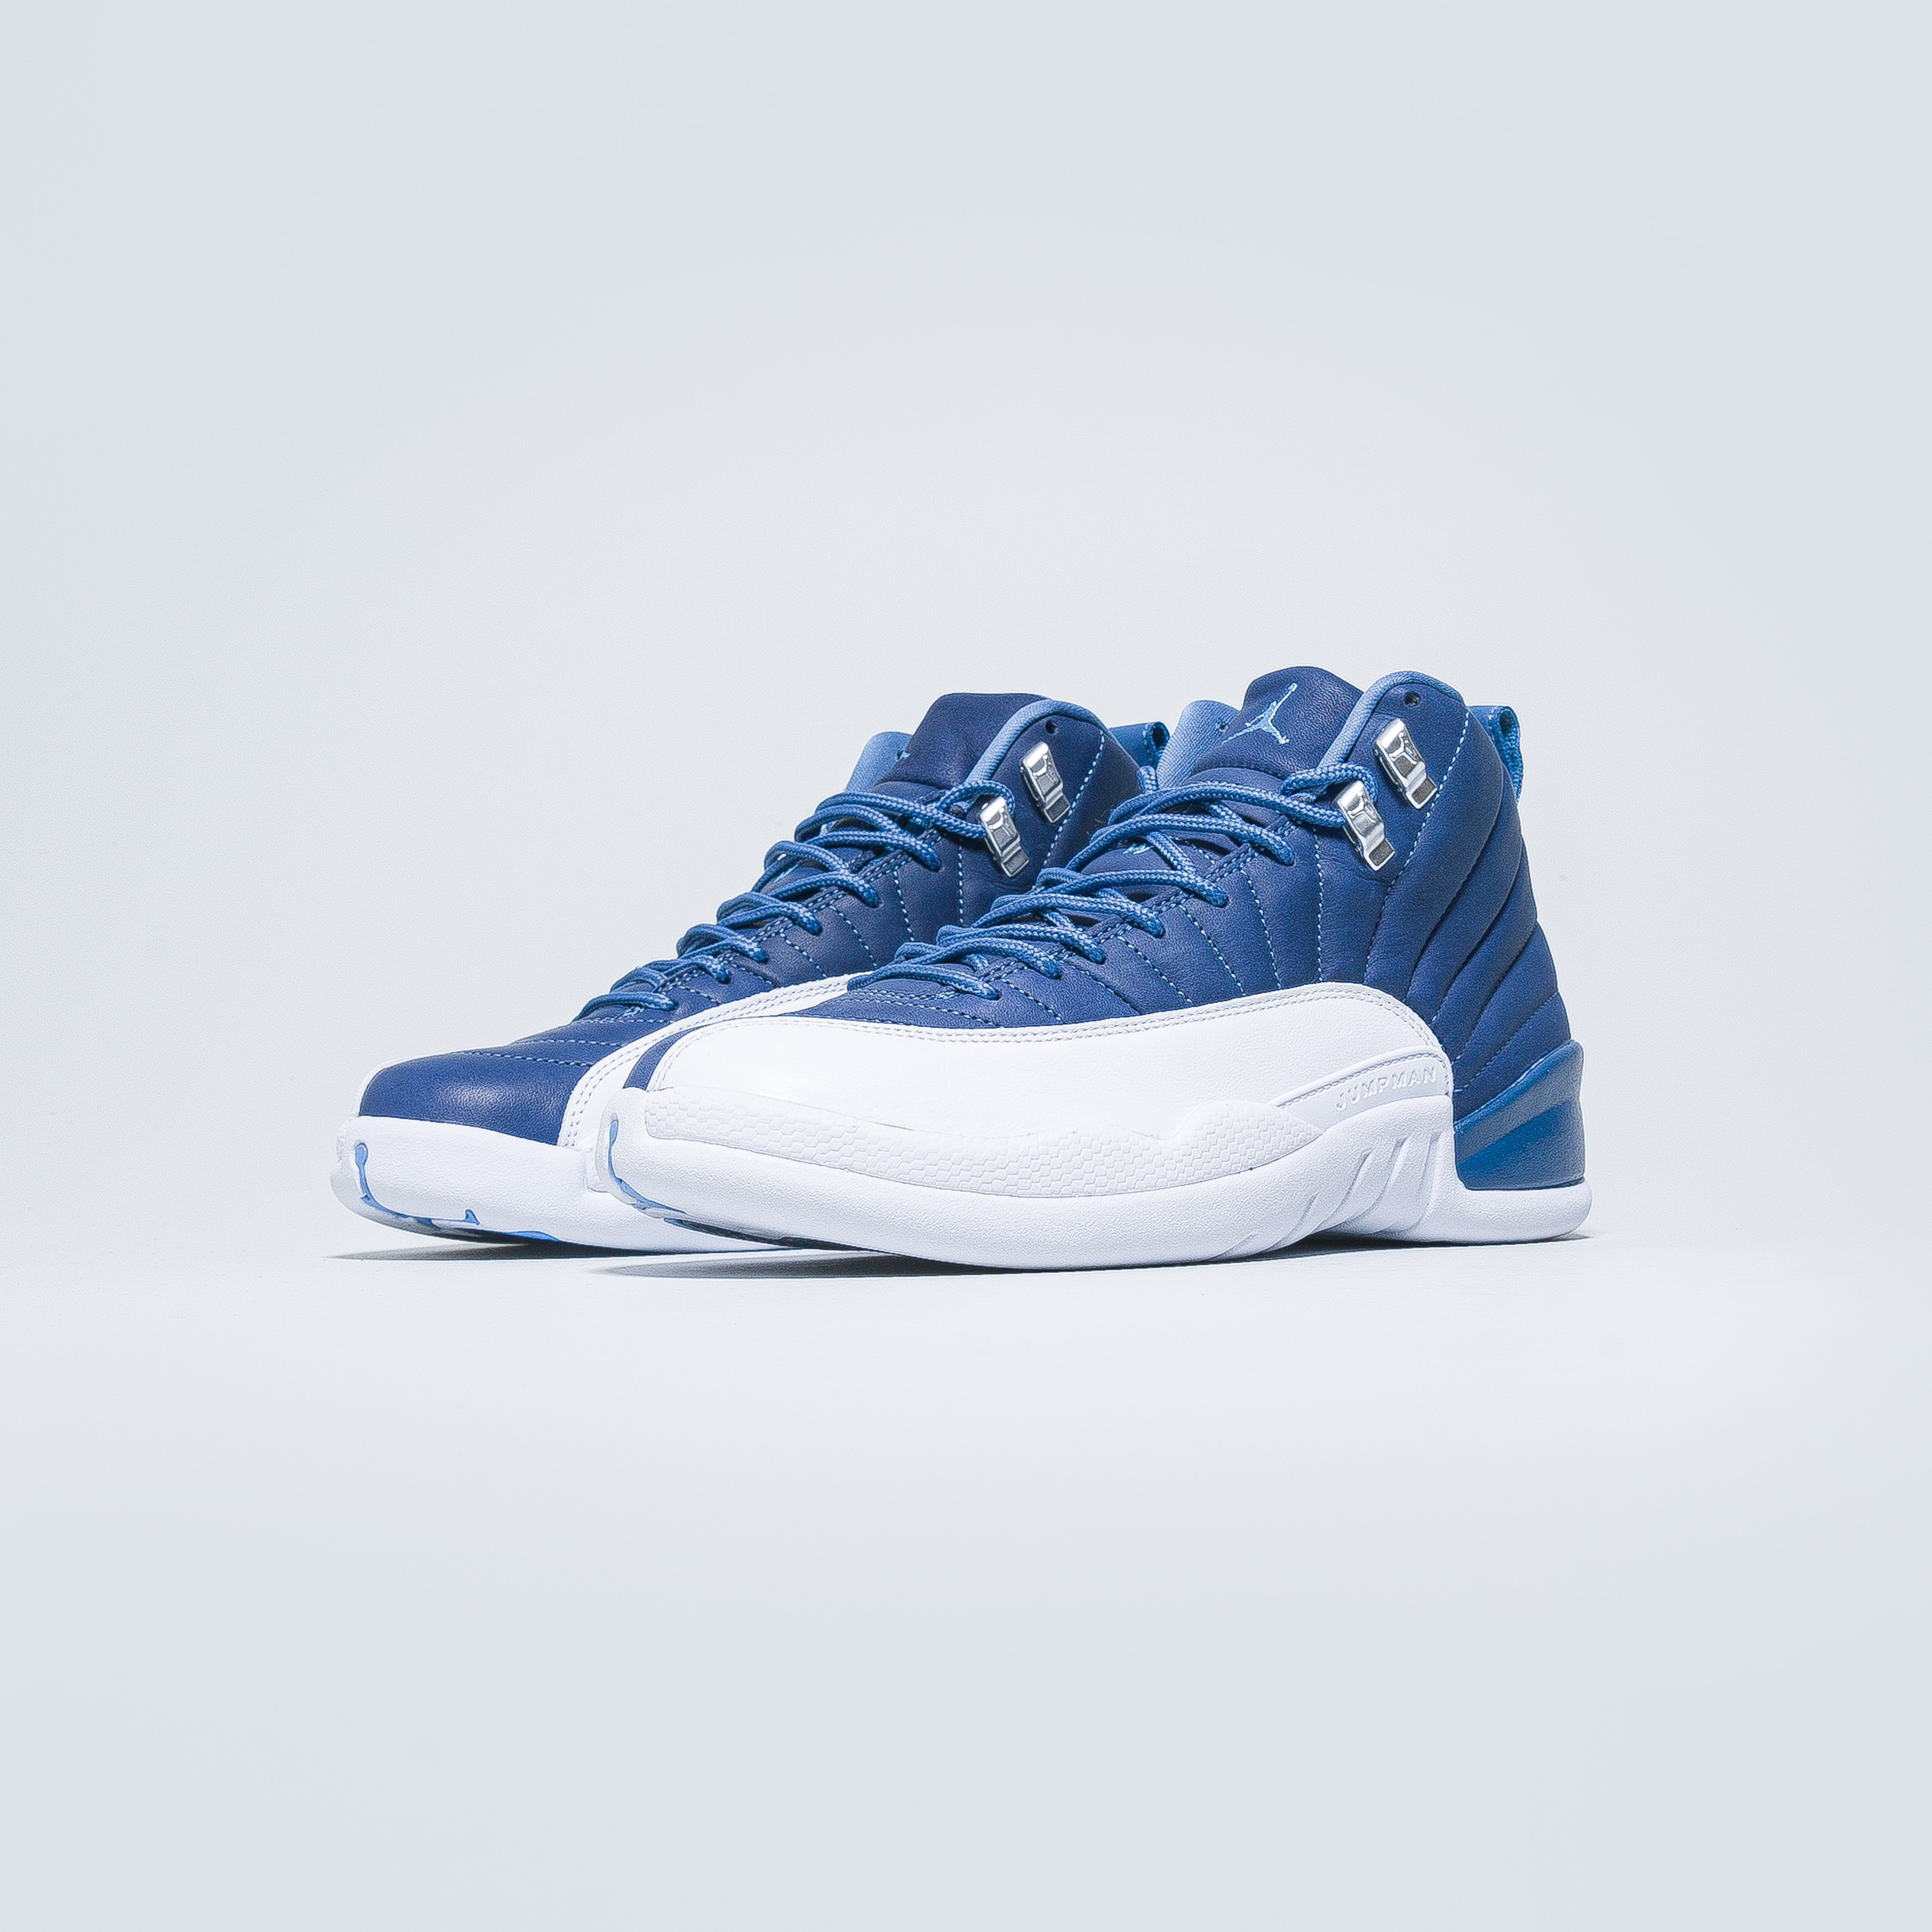 Jordan - Air Jordan 12 Retro - Stone Blue/Legend Blue-Obsidian - Up There